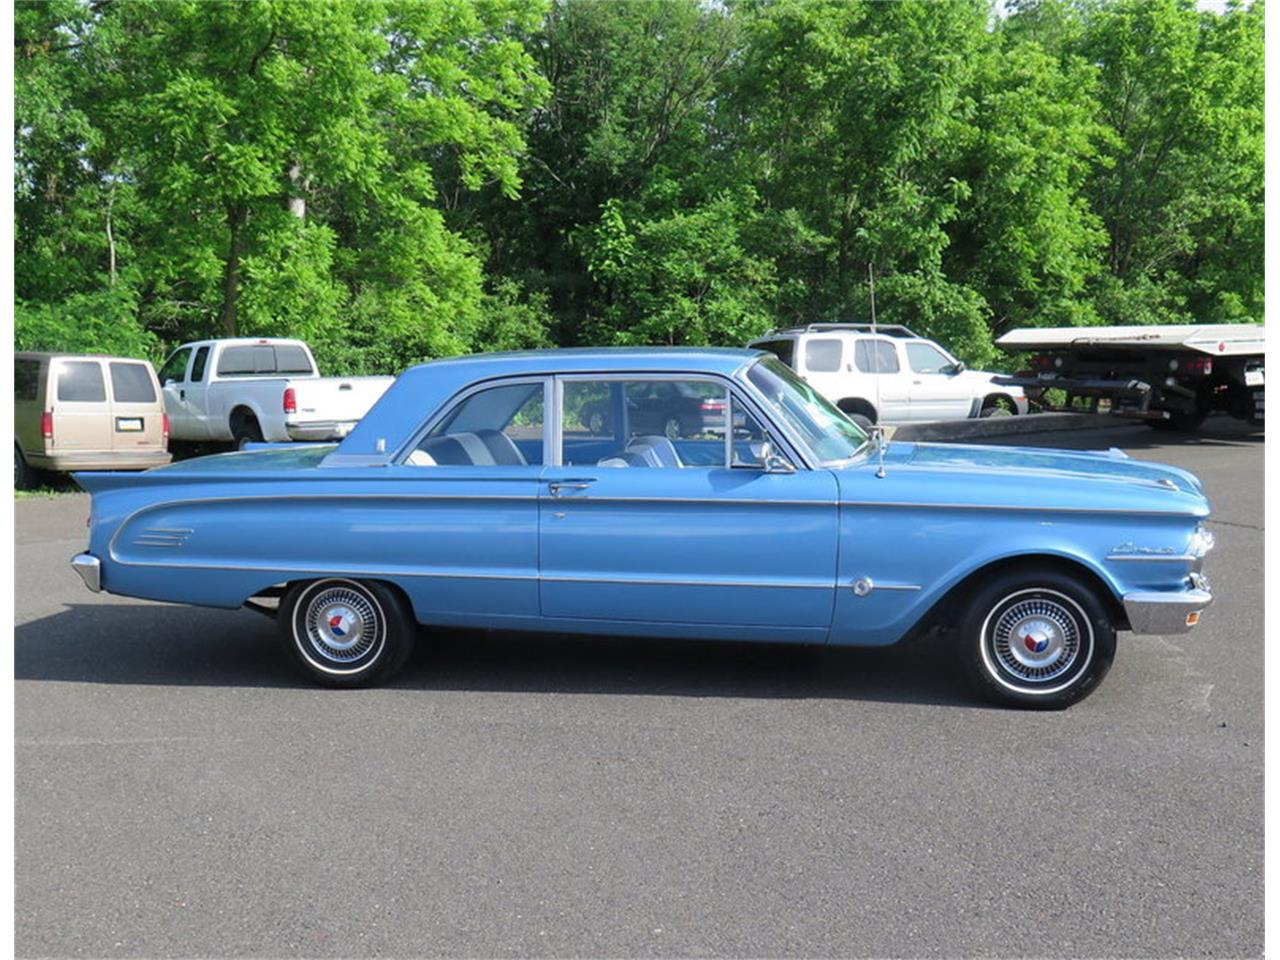 Large Picture of Classic '63 Mercury Comet located in Pennsylvania - $17,900.00 Offered by Old Forge Motorcars - NMVR